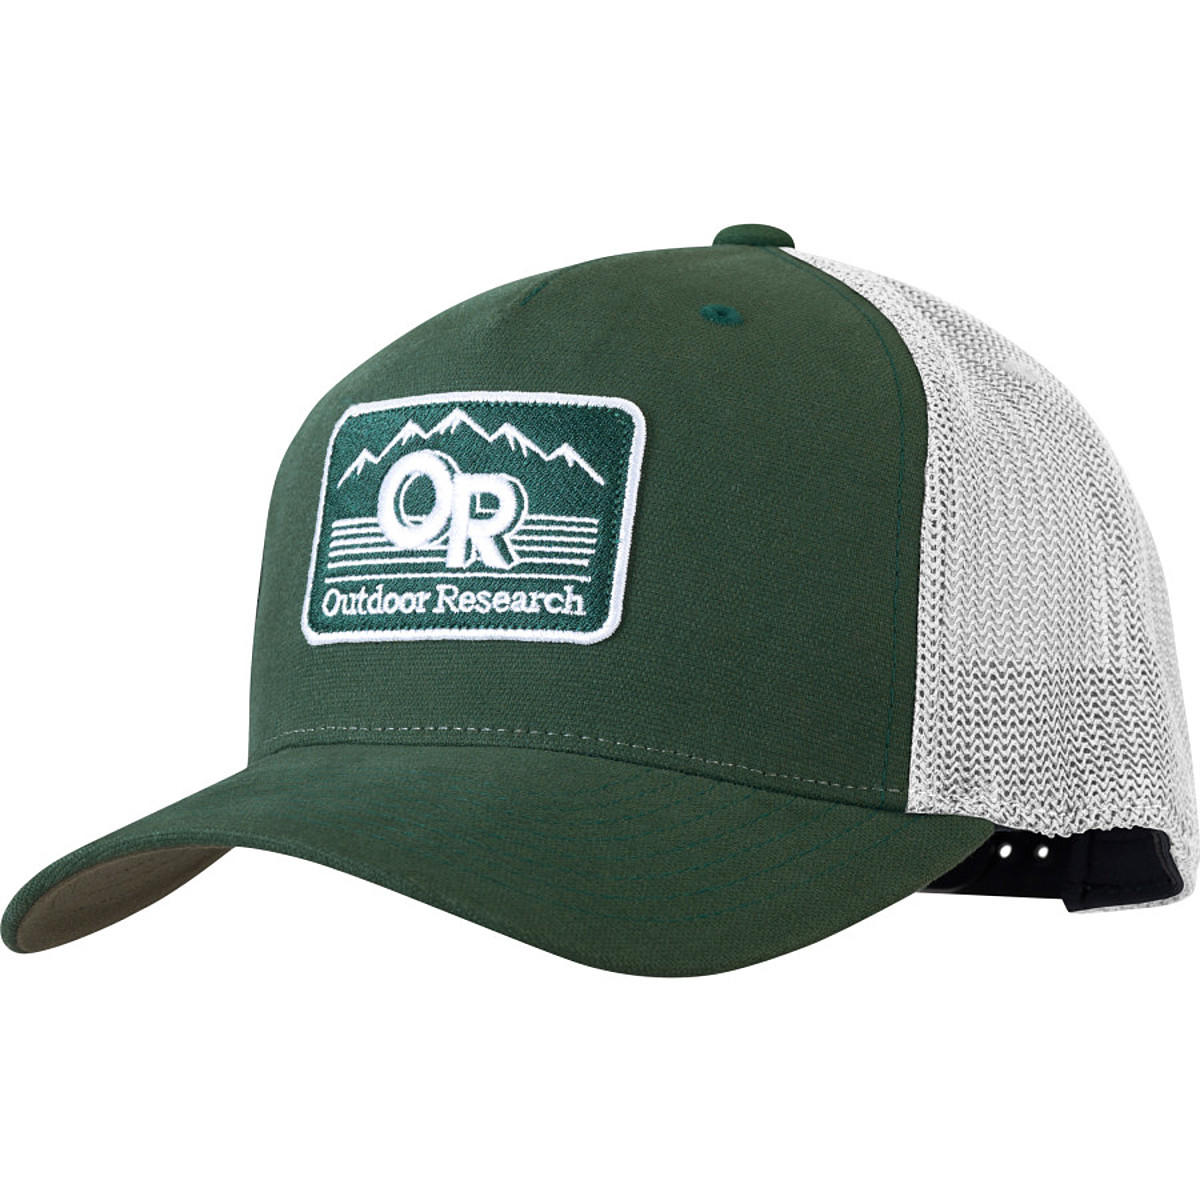 7e9919dee03fc Outdoor Research Advocate Cap from Backcountry.com